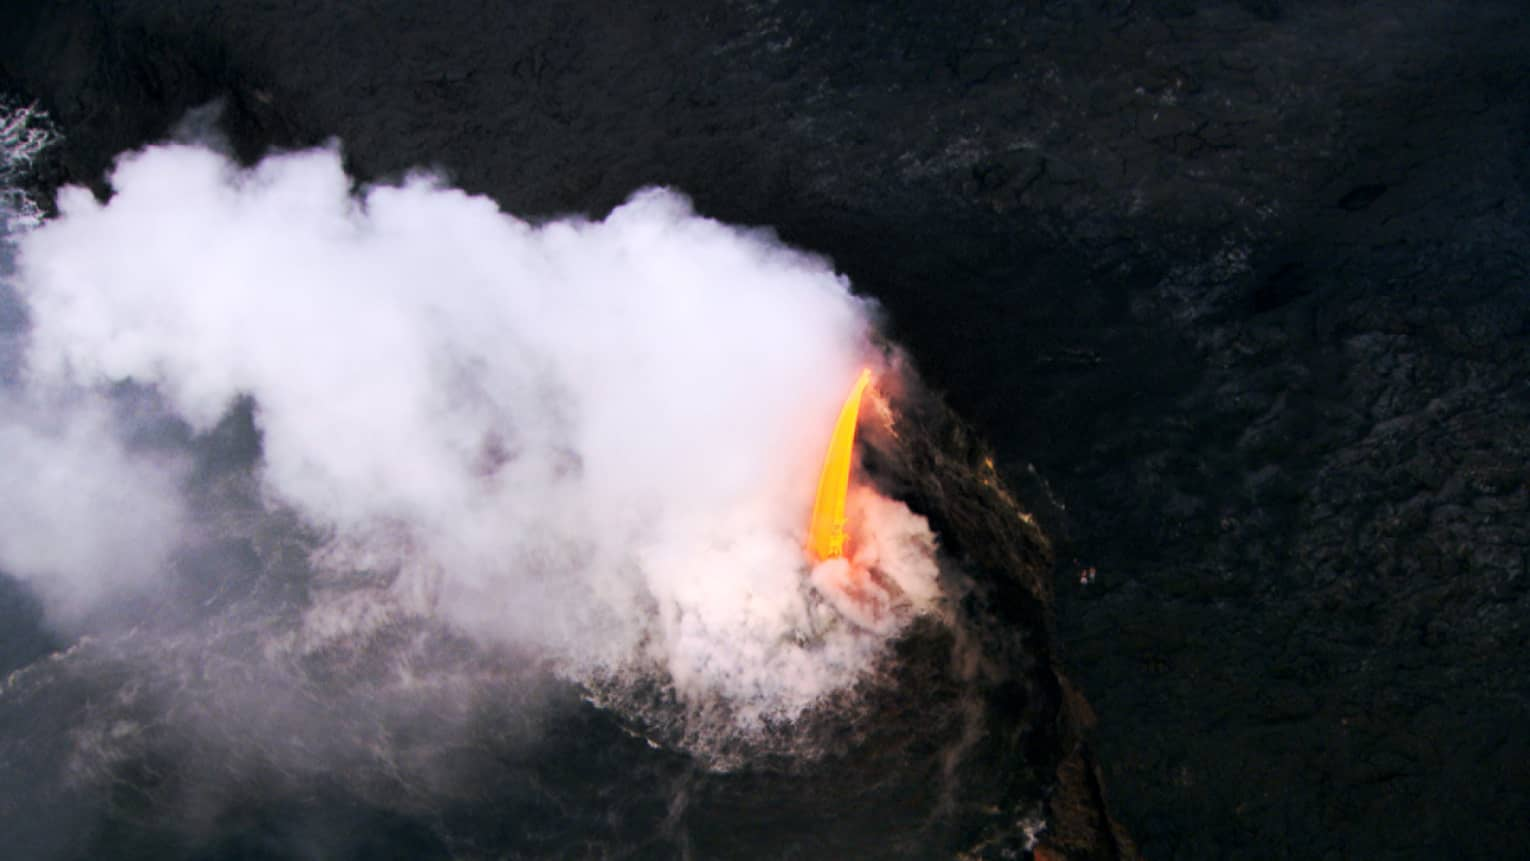 Aerial view of steam rising around black lava rock, stream of hot orange lava